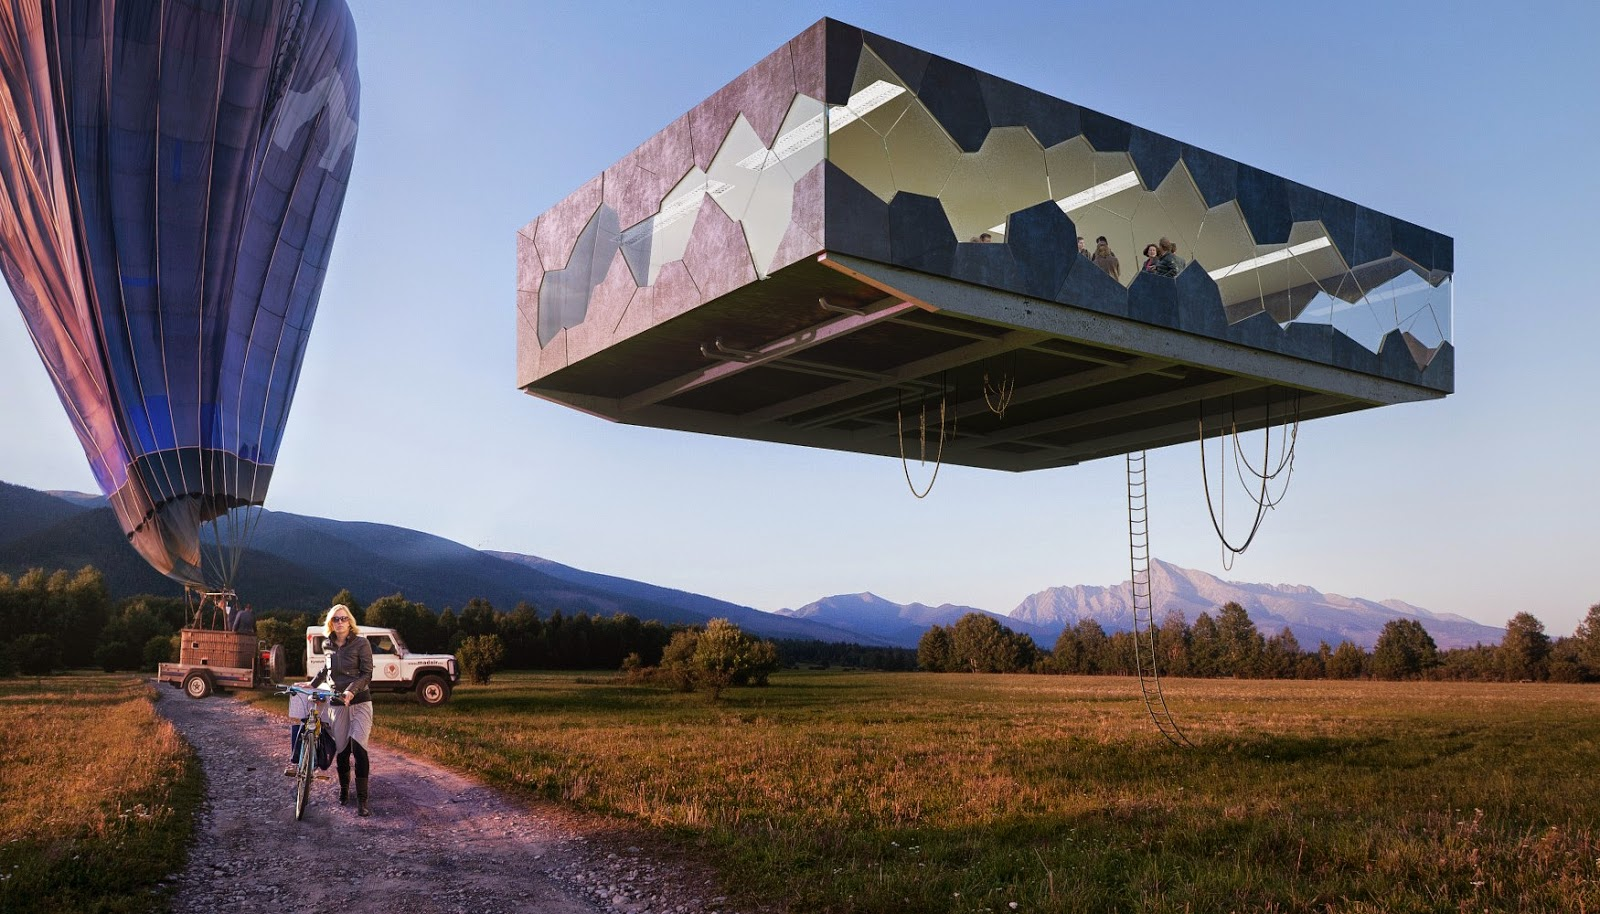 FLYING HOUSE: Flying House: Floating high tech residential ...